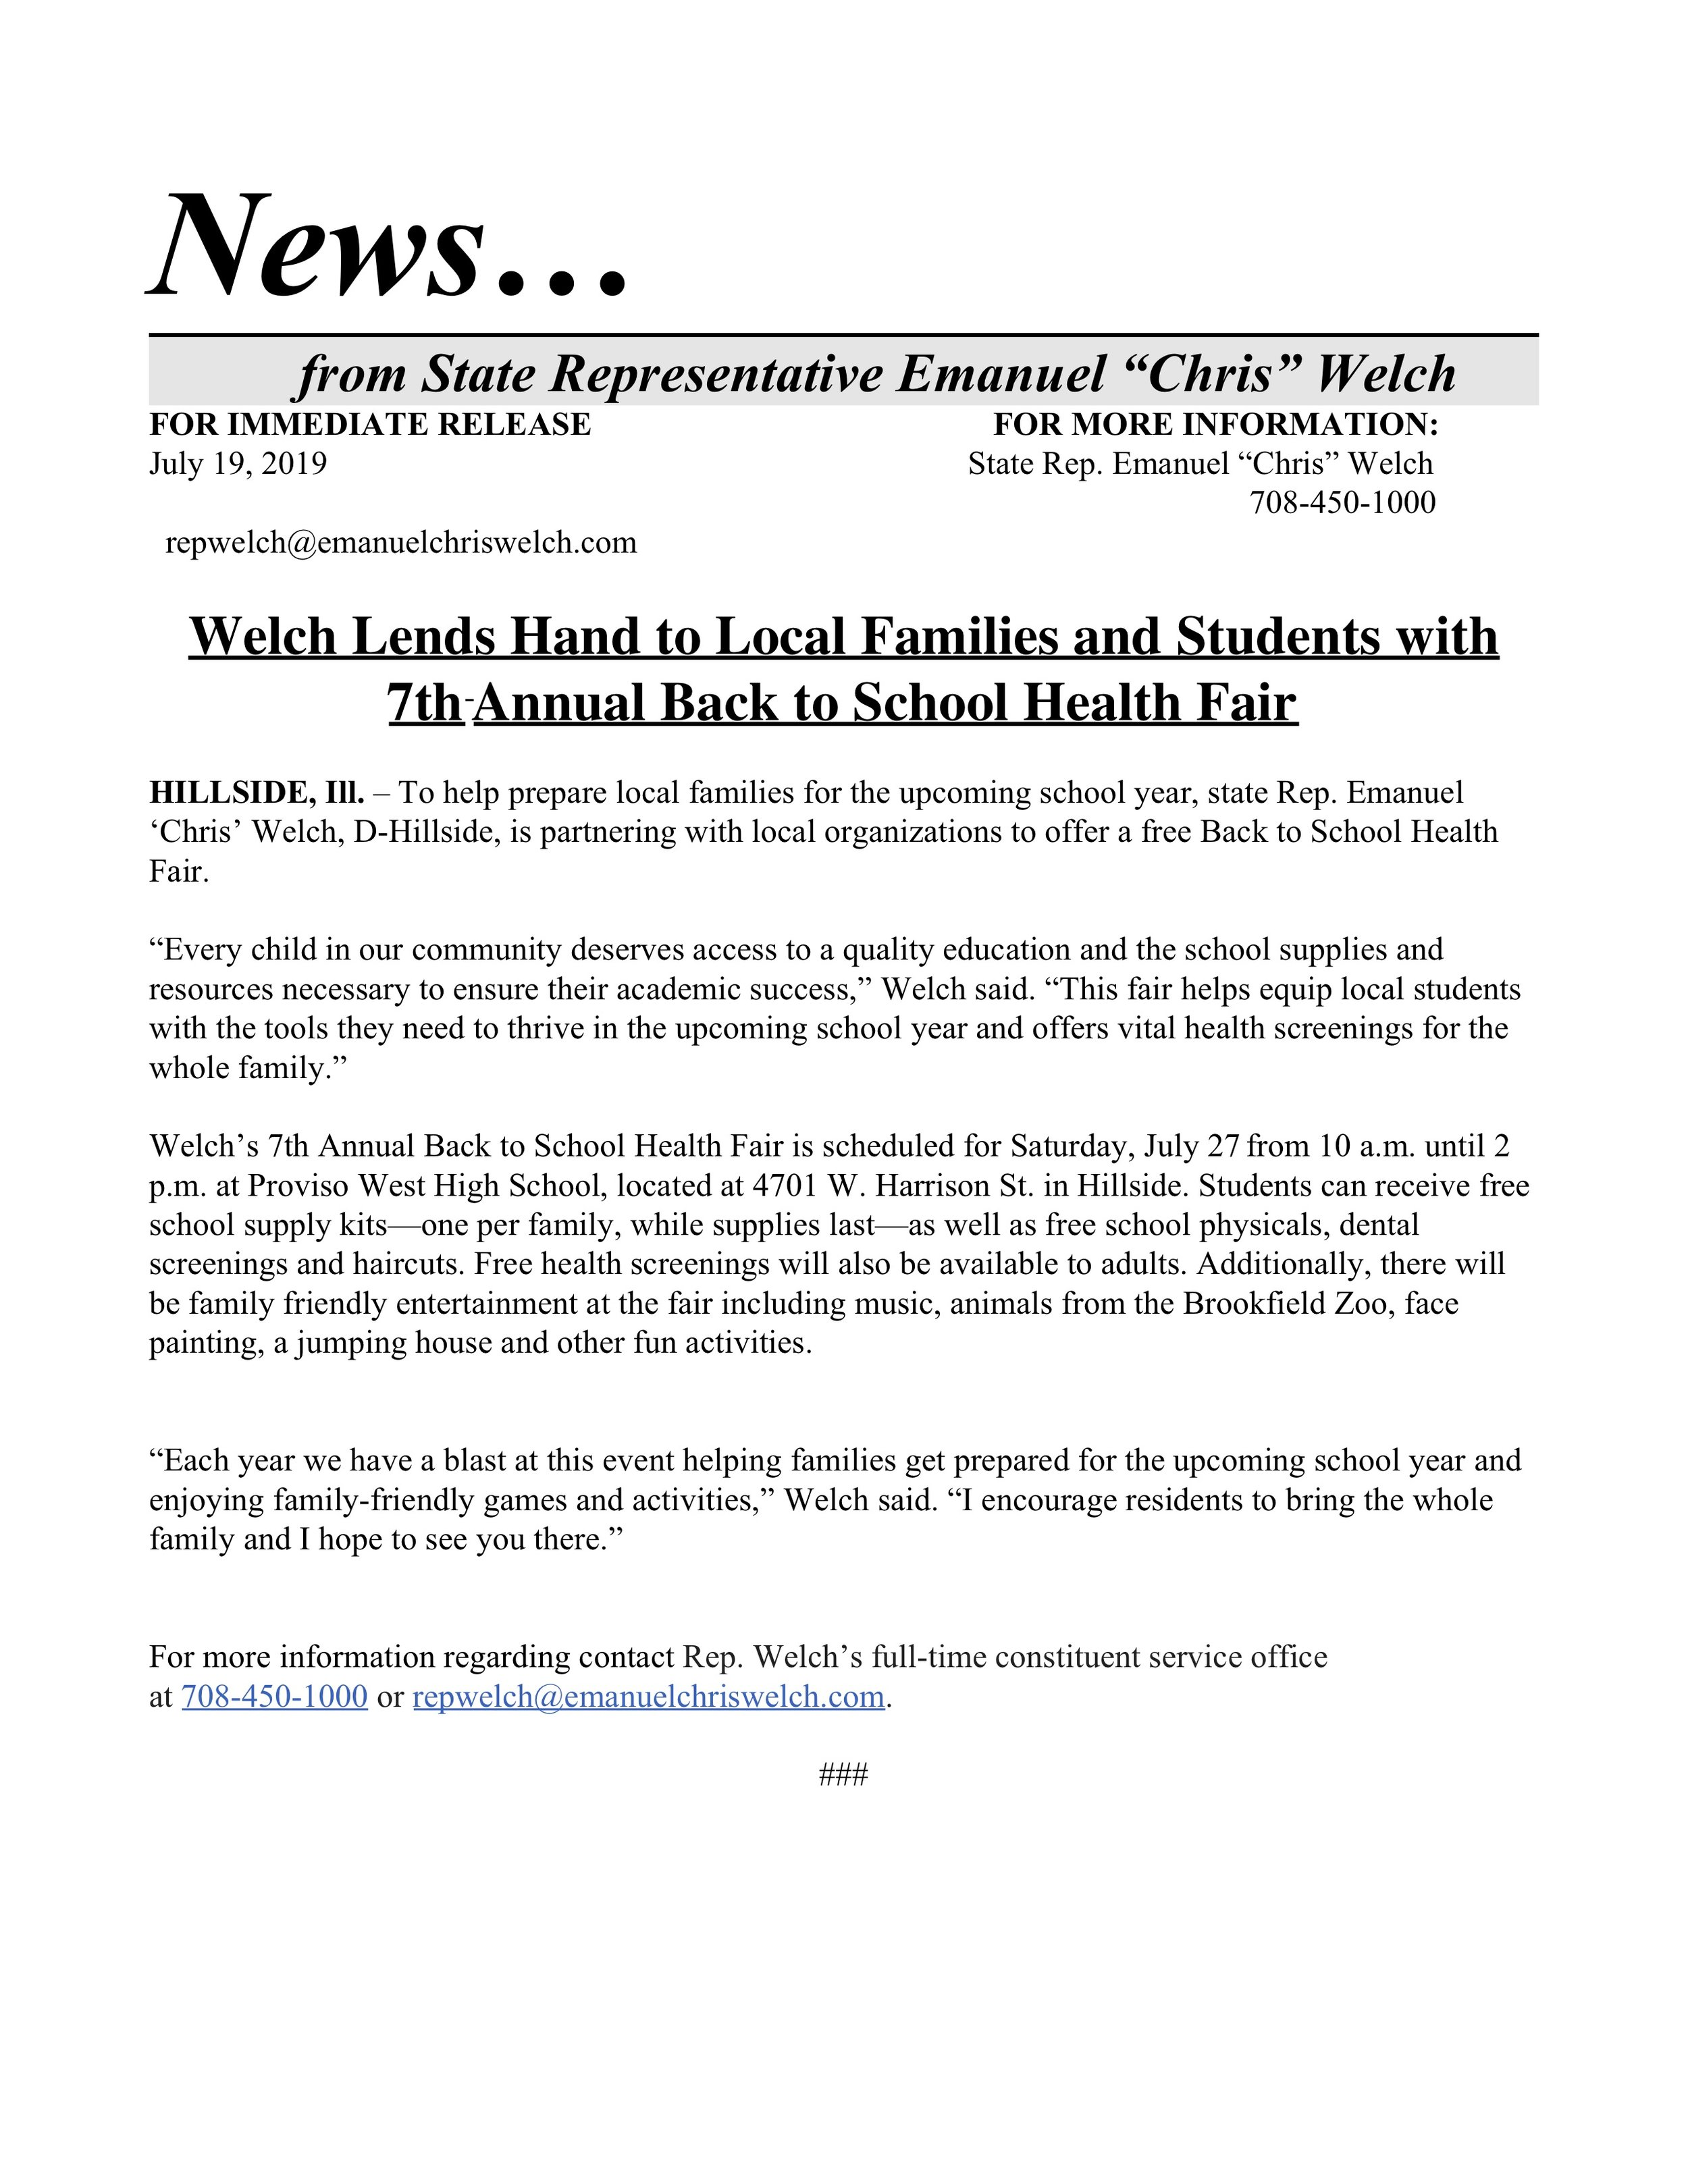 Welch Lends Hand to Local Families and Students with 7th Annual Back to School Health Fair  (July 19, 2019)